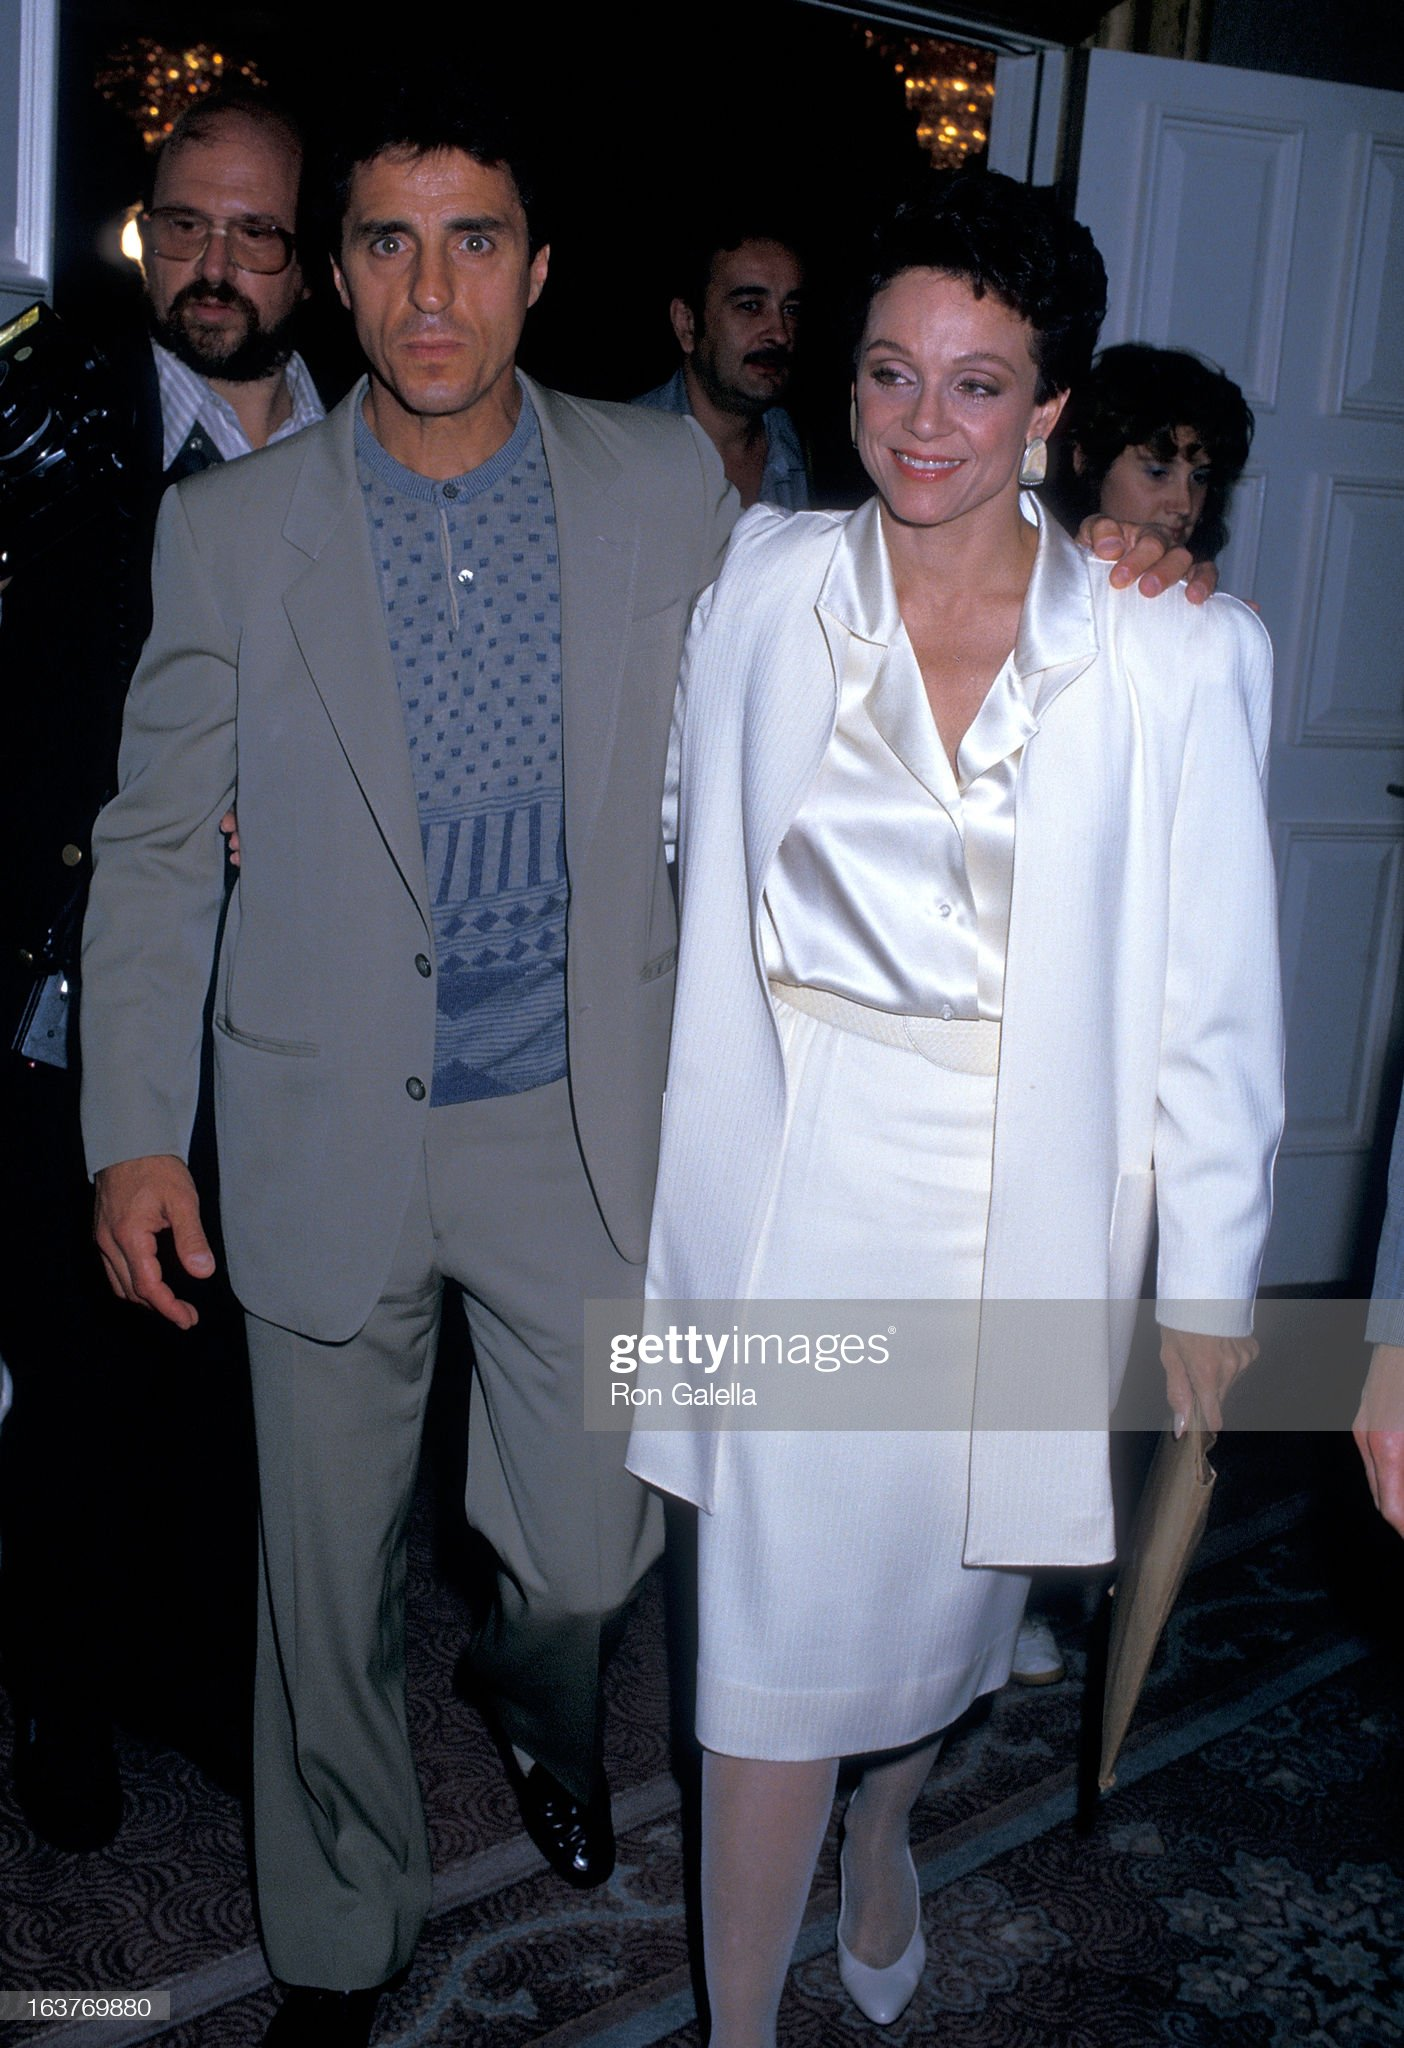 actress-valerie-harper-and-husband-tony-cacciotti-attend-valerie-picture-id163769880